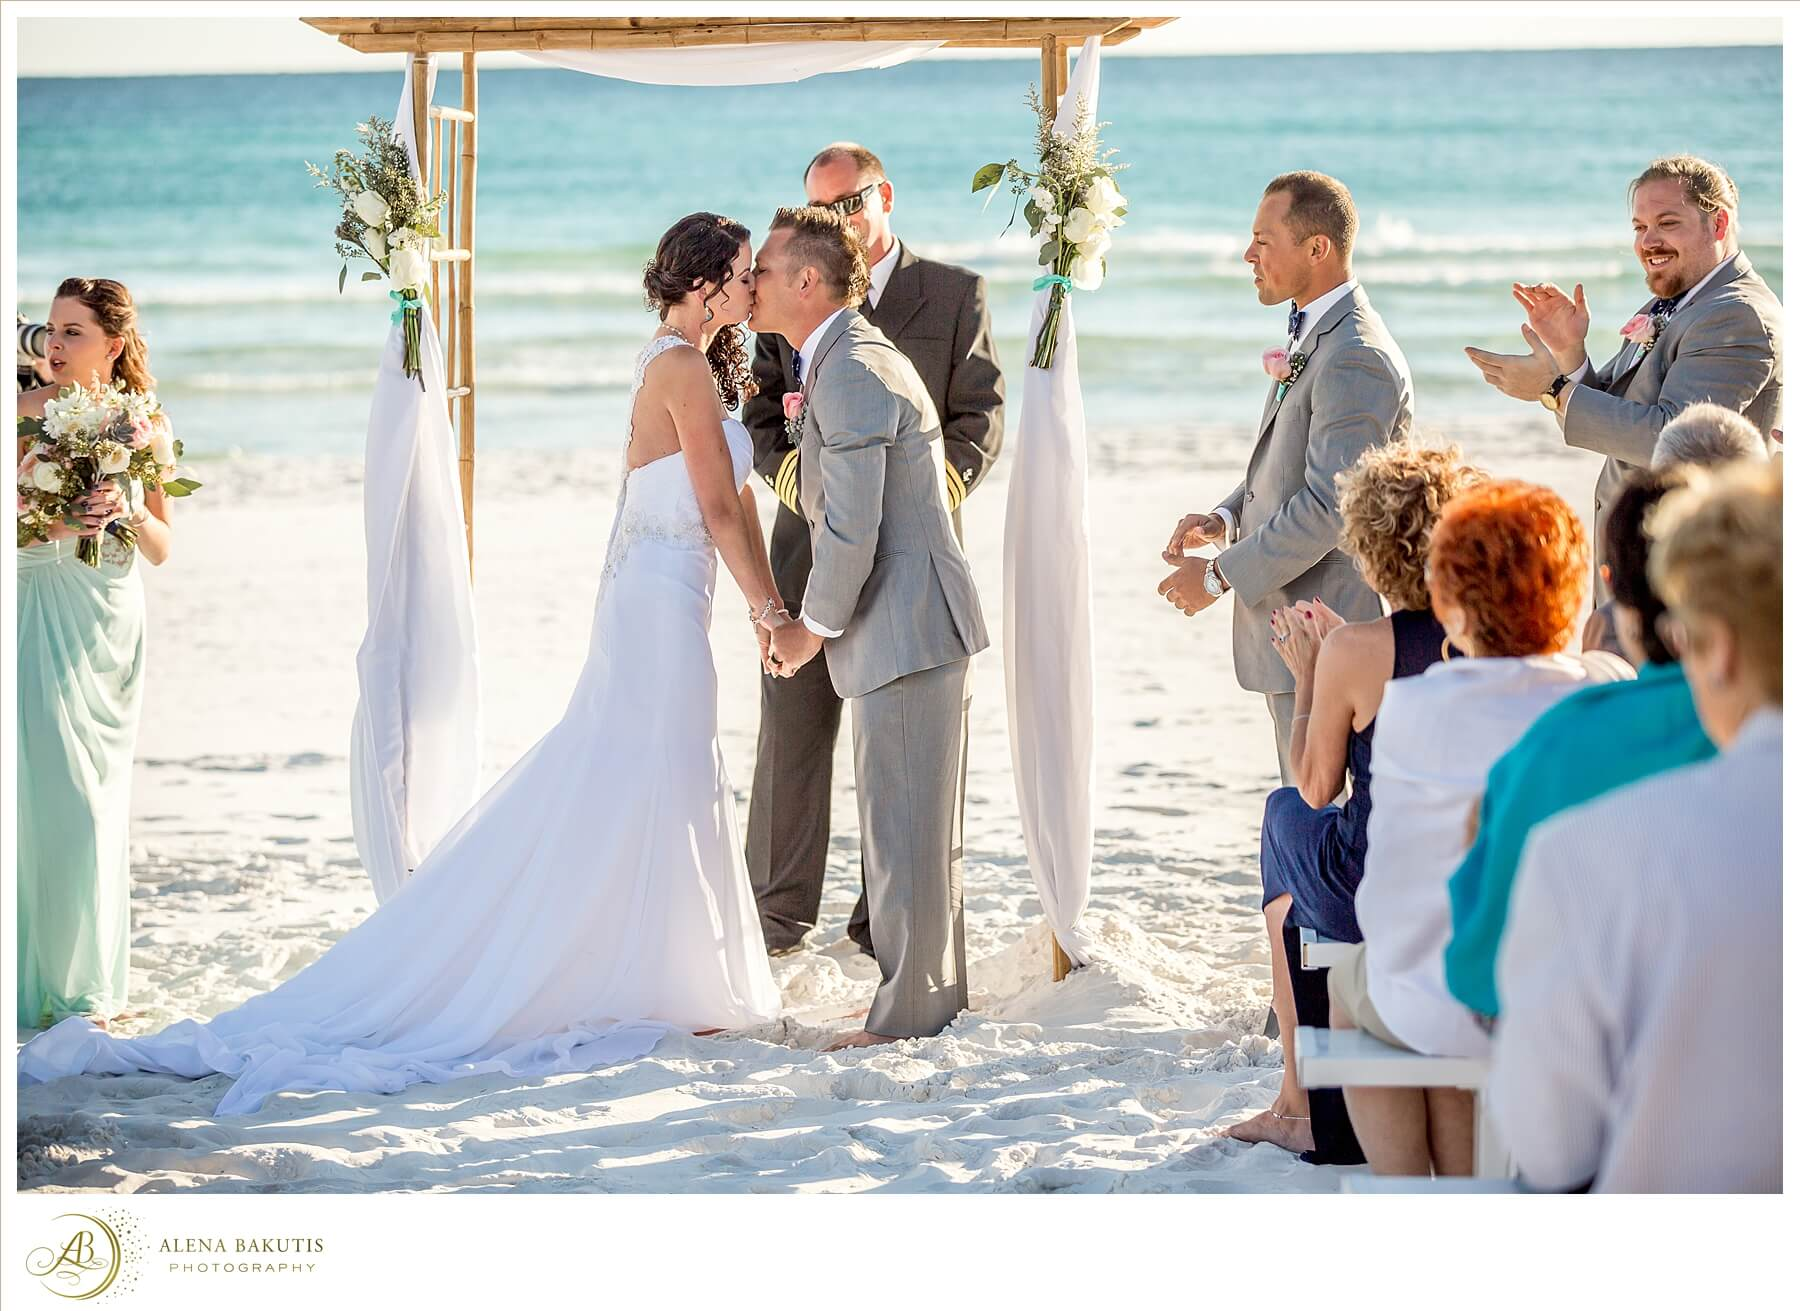 beach weddings destin fl Alena Bakutis Photography - Amber Brandon-432_WEB